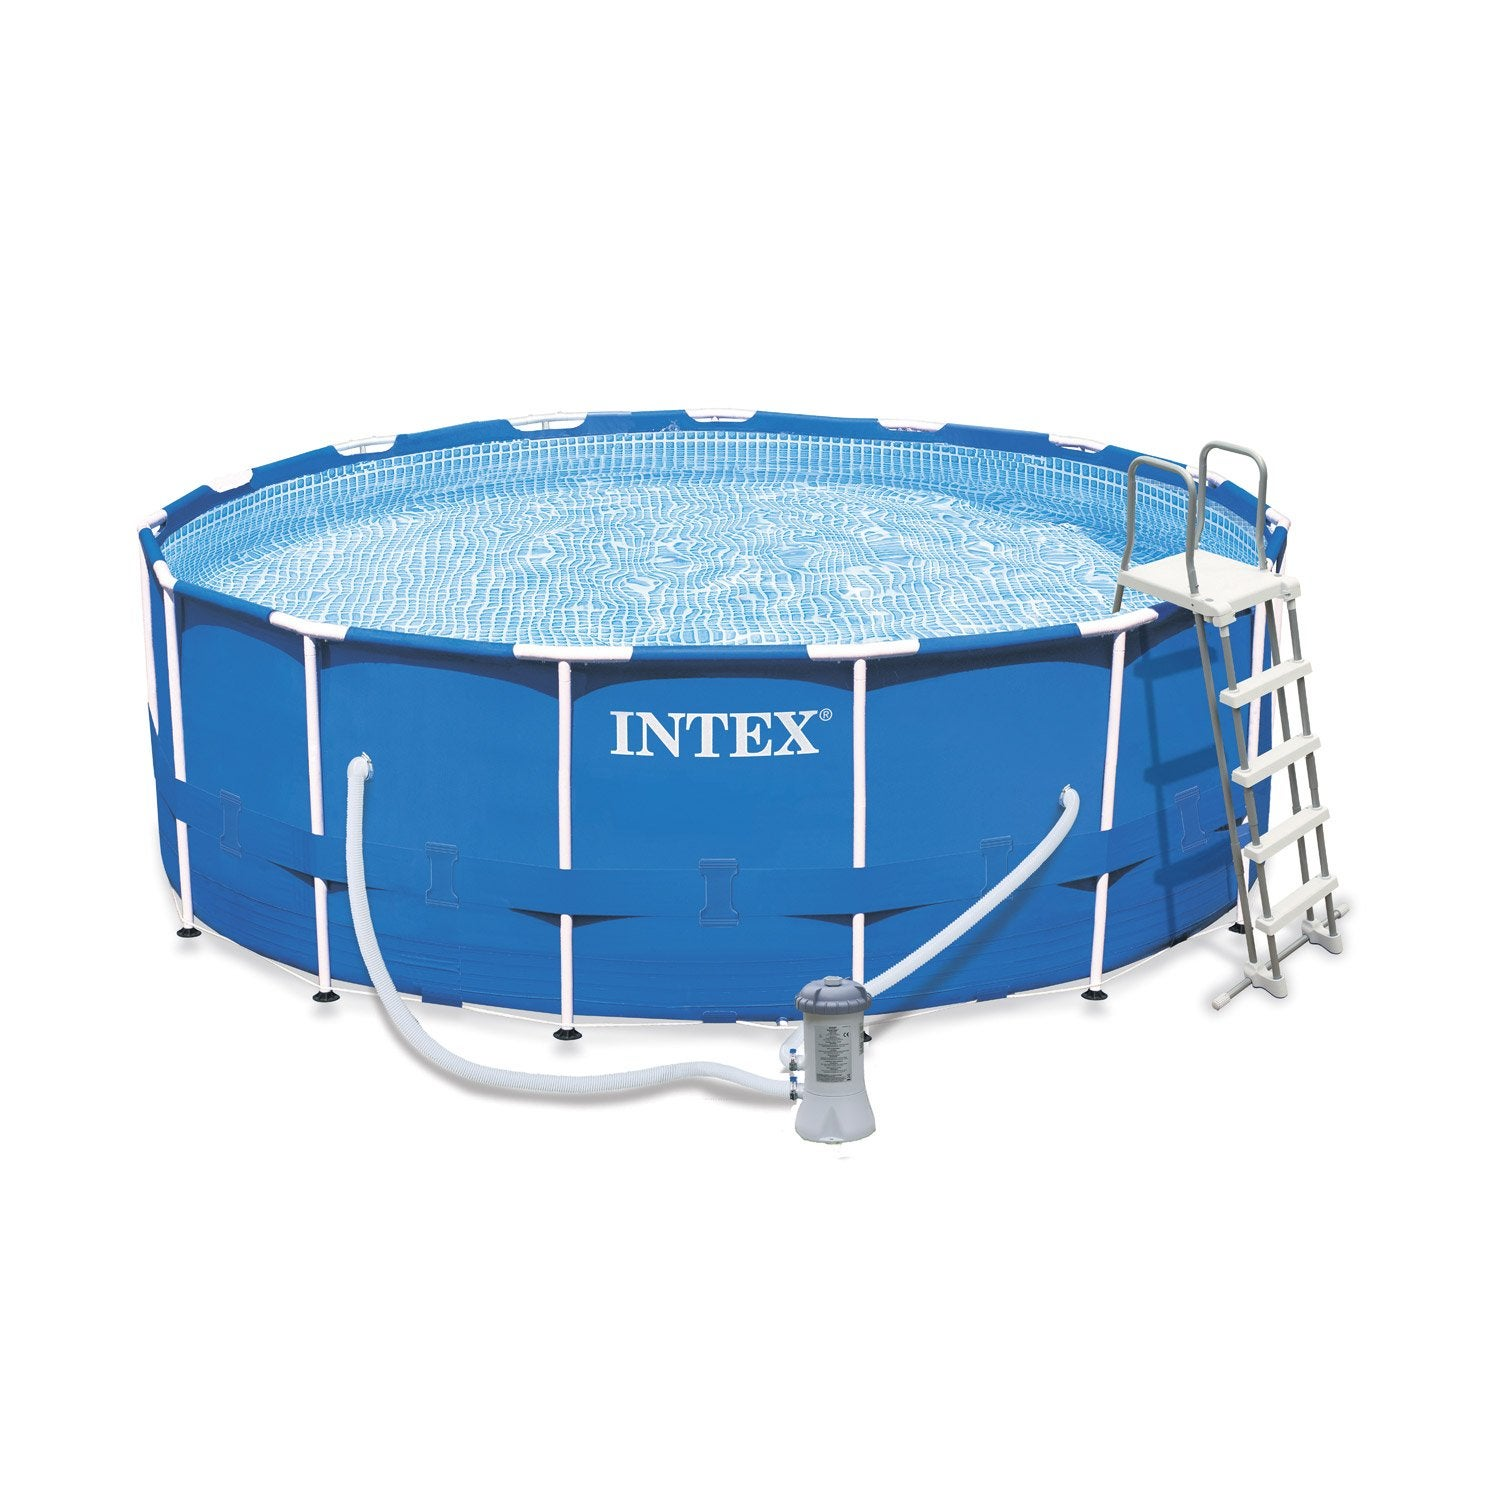 Piscine hors sol autoportante tubulaire metal frame intex for Piscine auchan hors sol